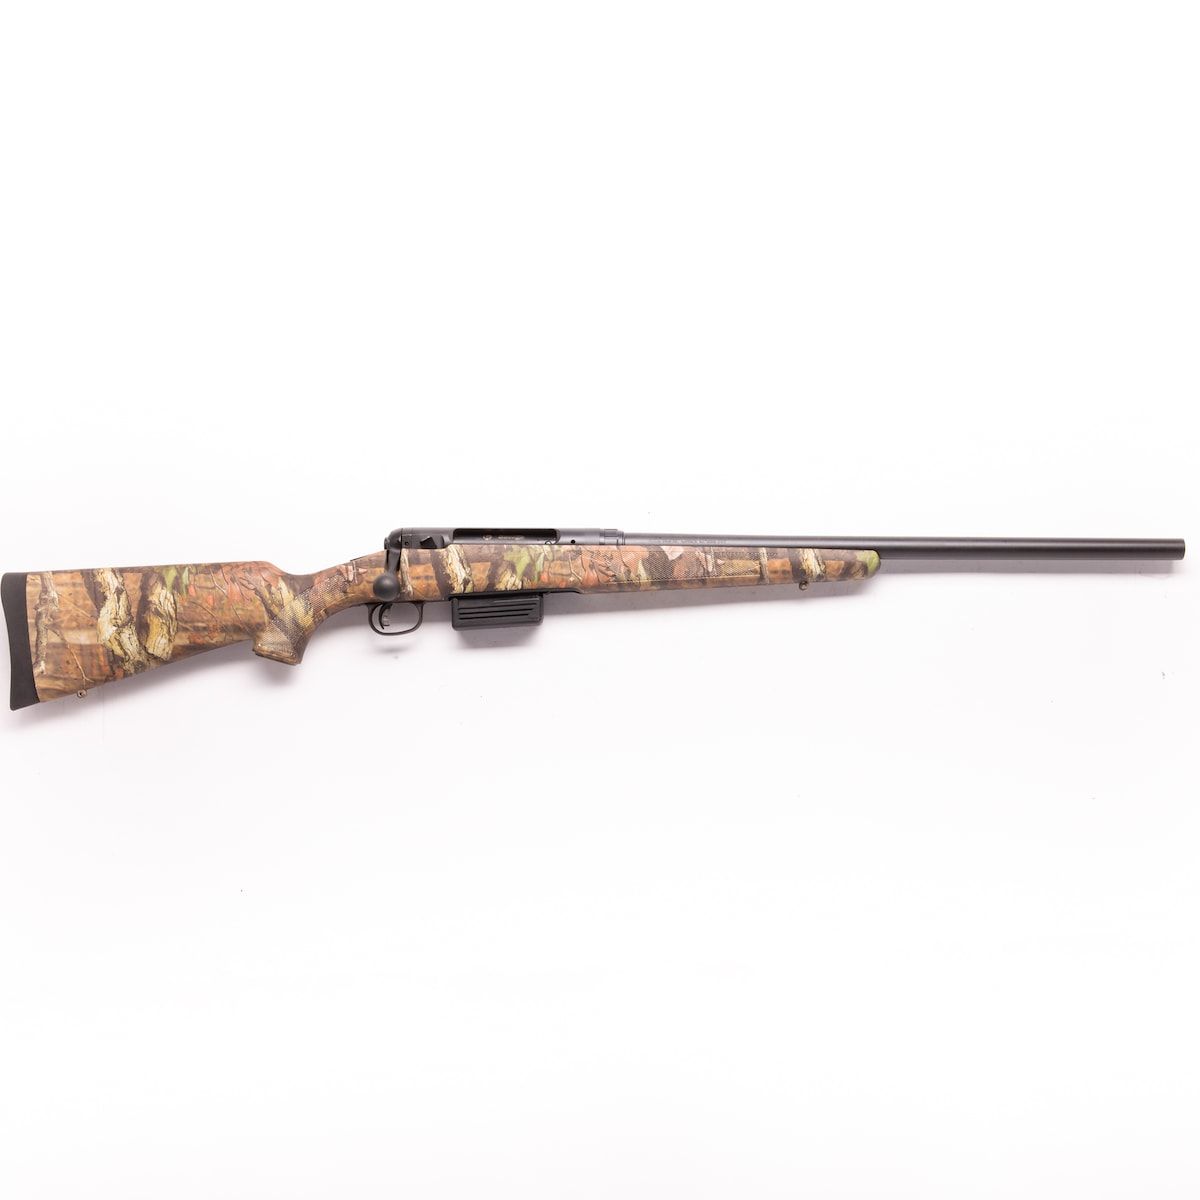 SAVAGE ARMS MODEL 220 CAMO